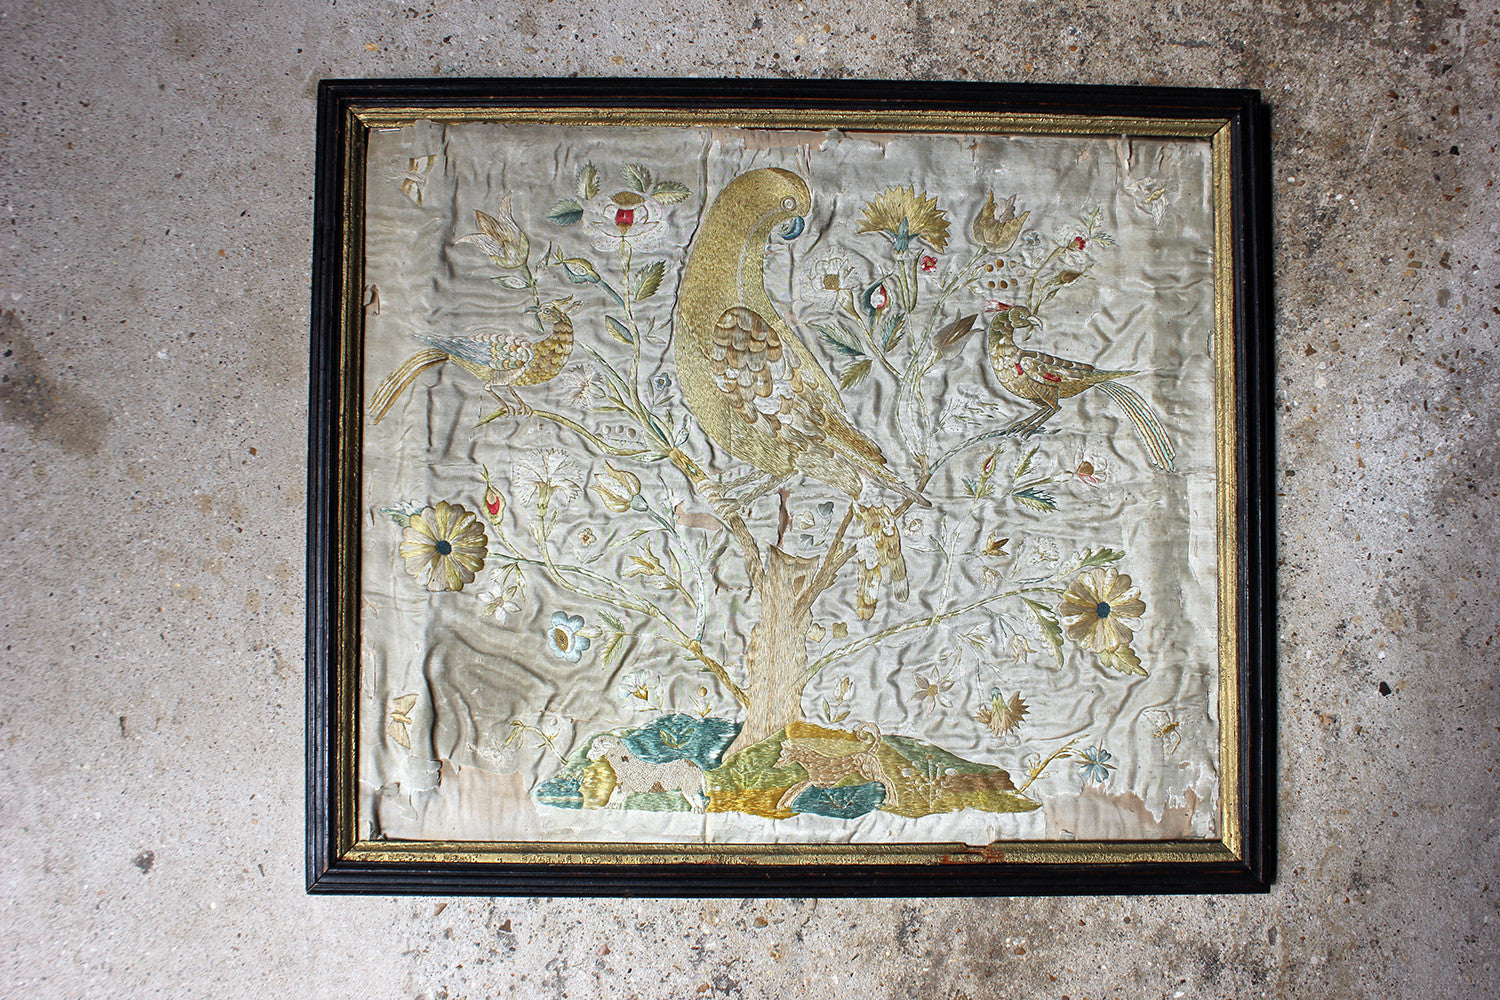 A Very Pretty Early 18thC Period Silkwork Picture Depicting the Tree of Life c.1700